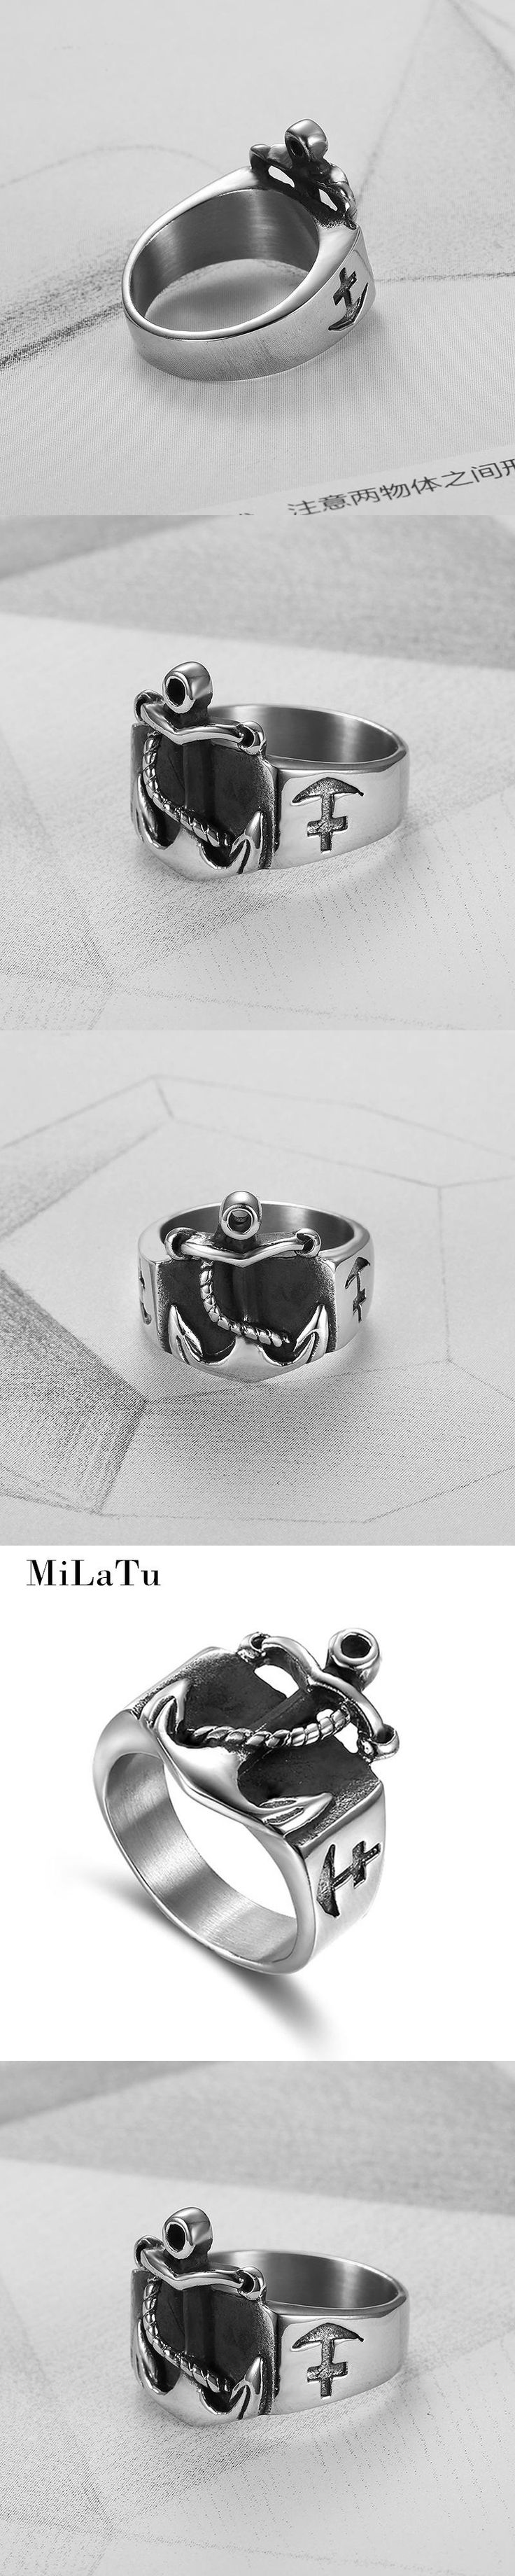 MiLaTu Brand Punk Anchor Rings Men Jewelry Stainless Steel Biker Casting Ring Vintage Male Jewelry US Size 7 to 13 R716G